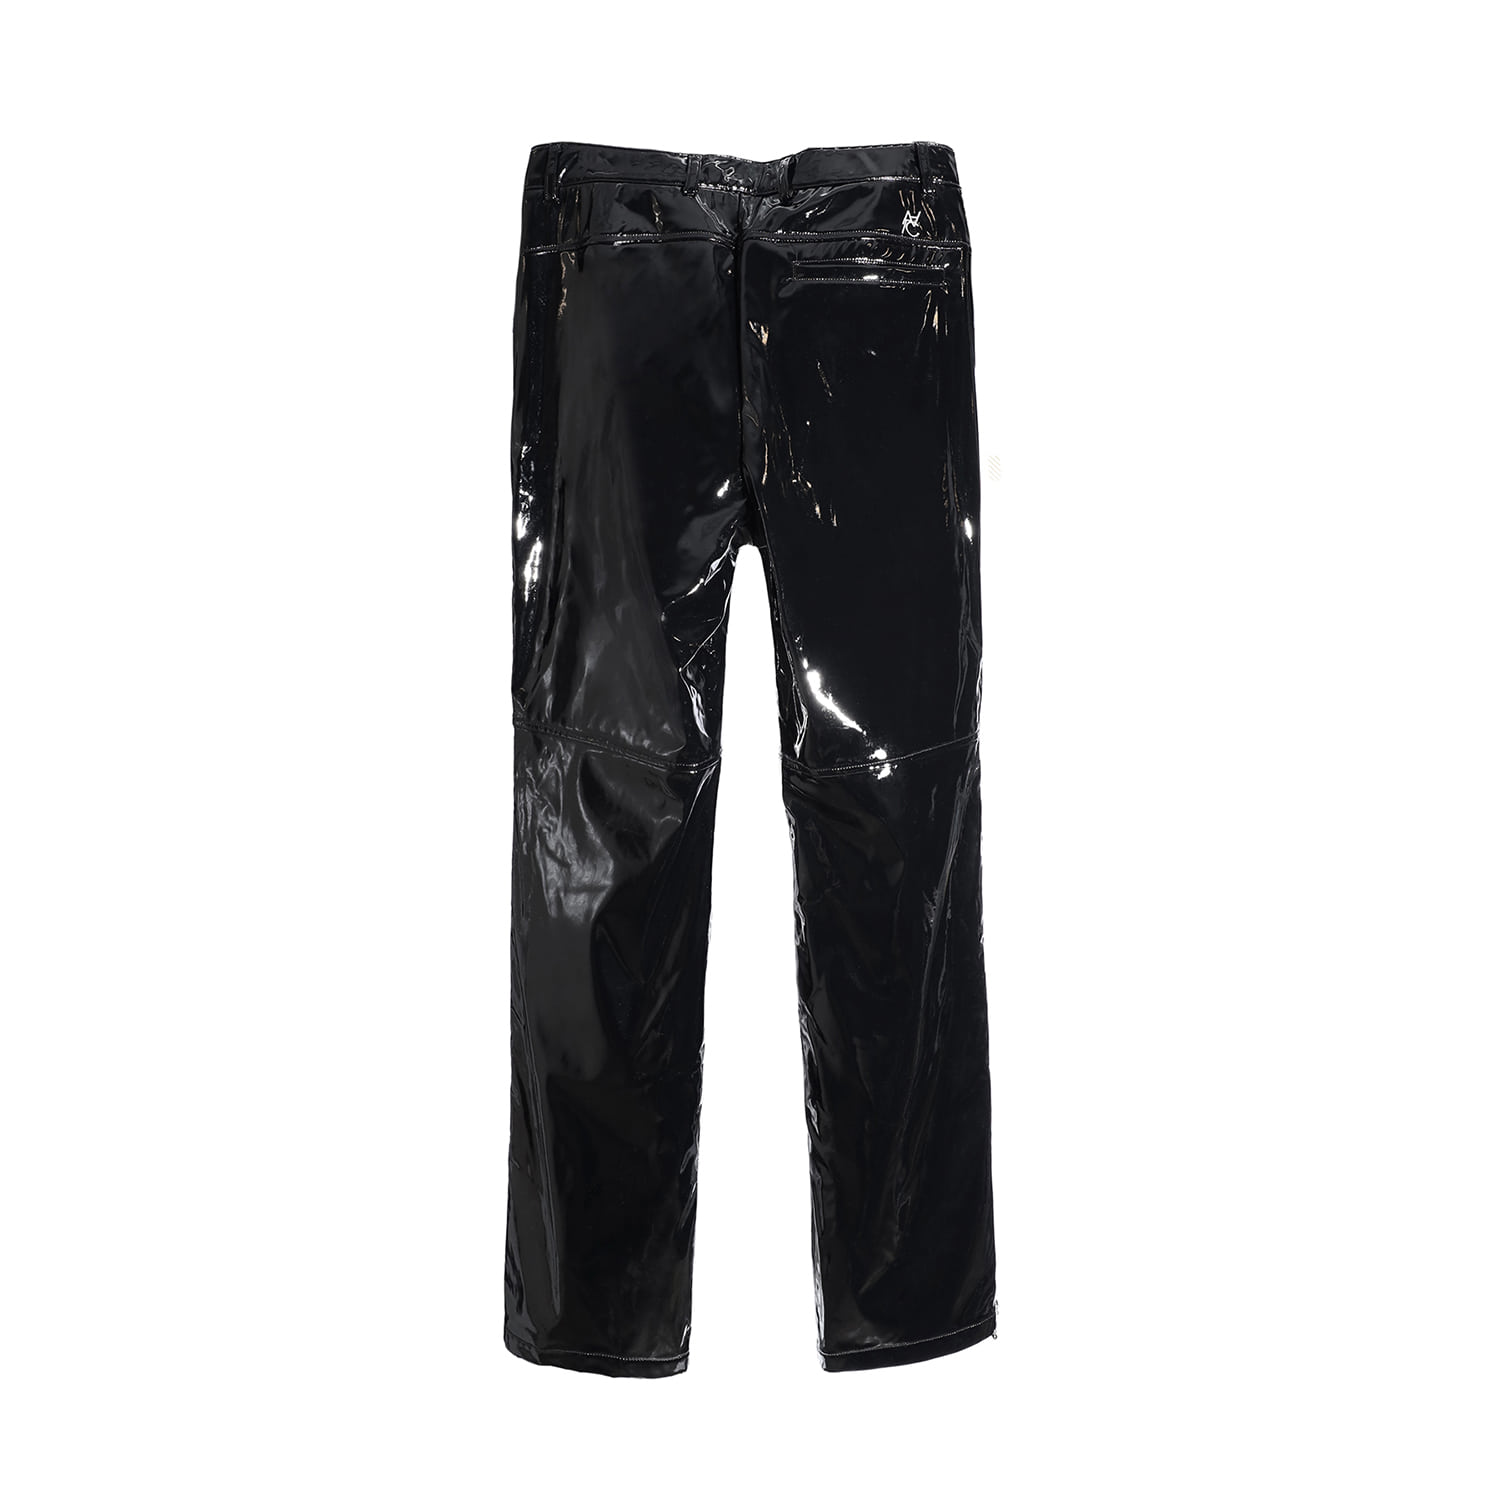 Zippered Straight/Bootcut Trouser (enamel)